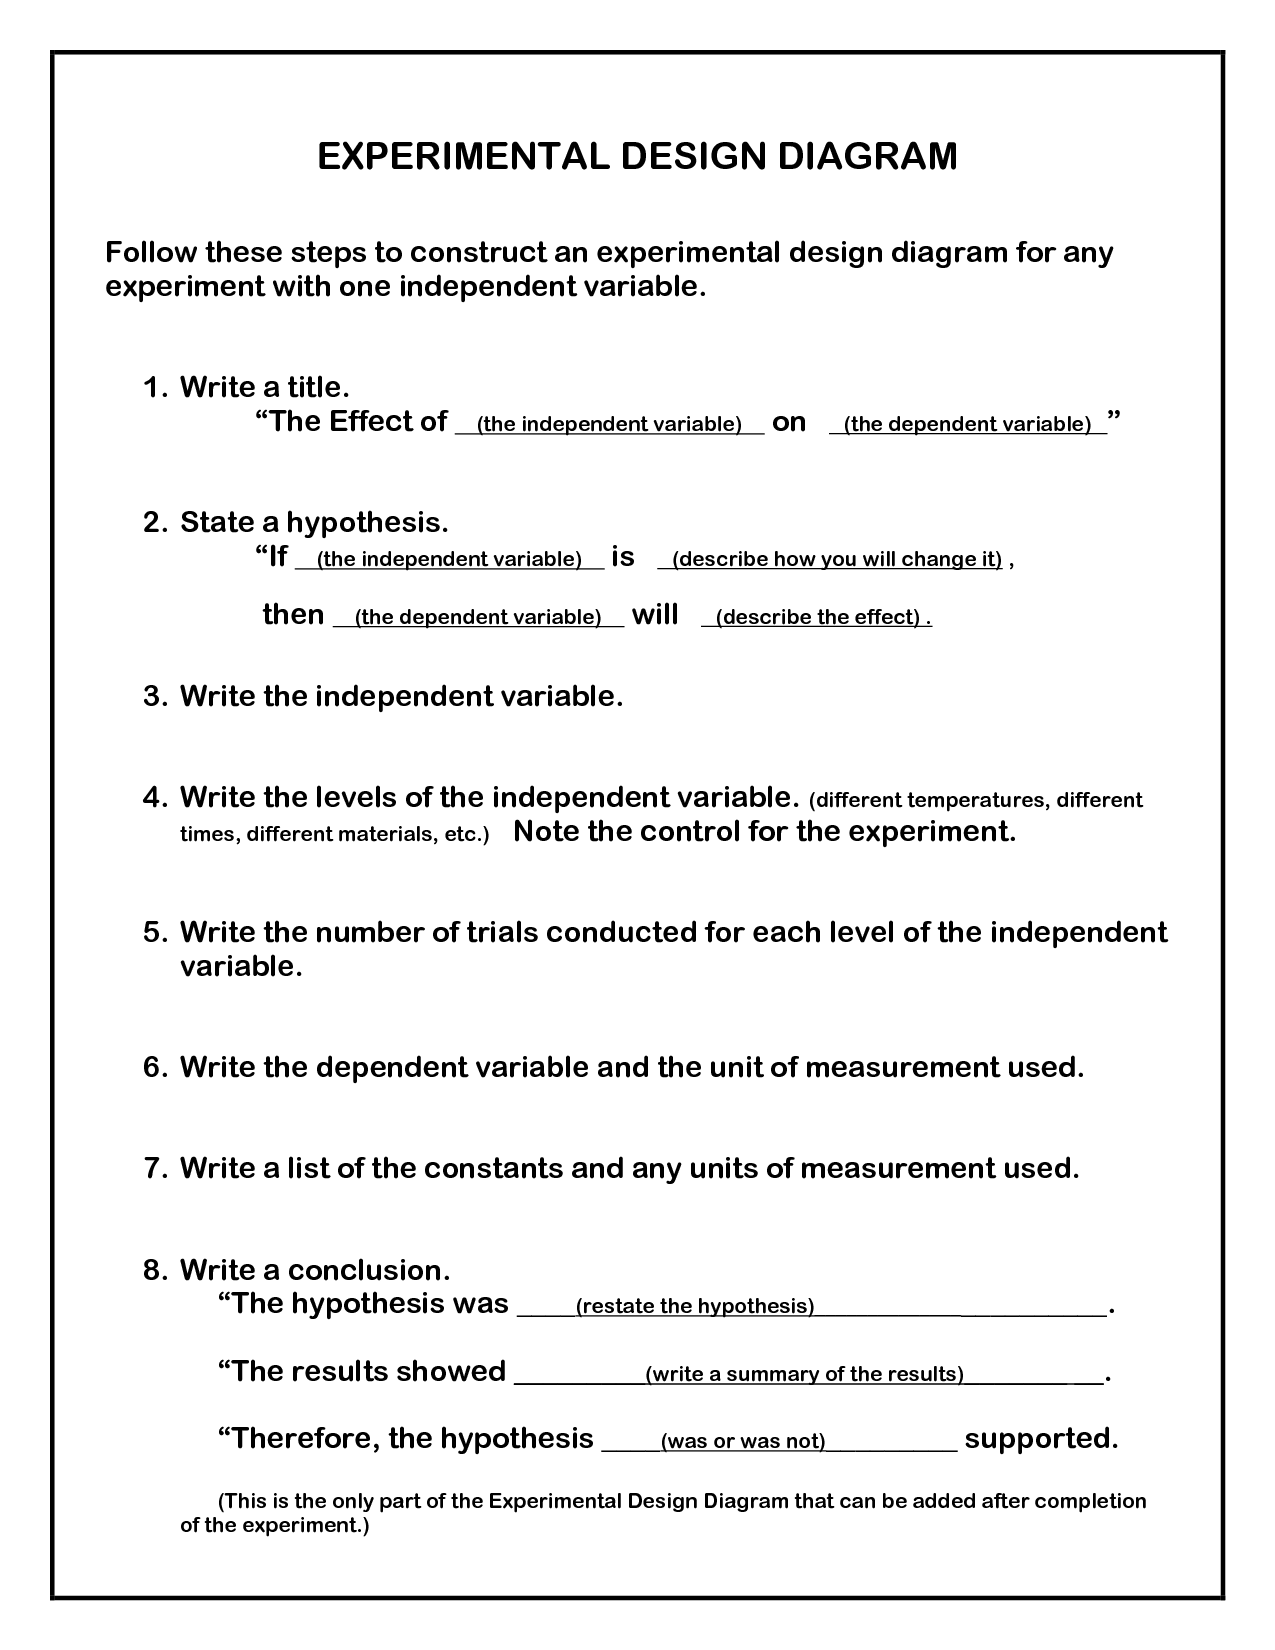 Worksheets Scientific Method Worksheet Middle School how to design an experiment ask com image search projects middle school sciencescientific